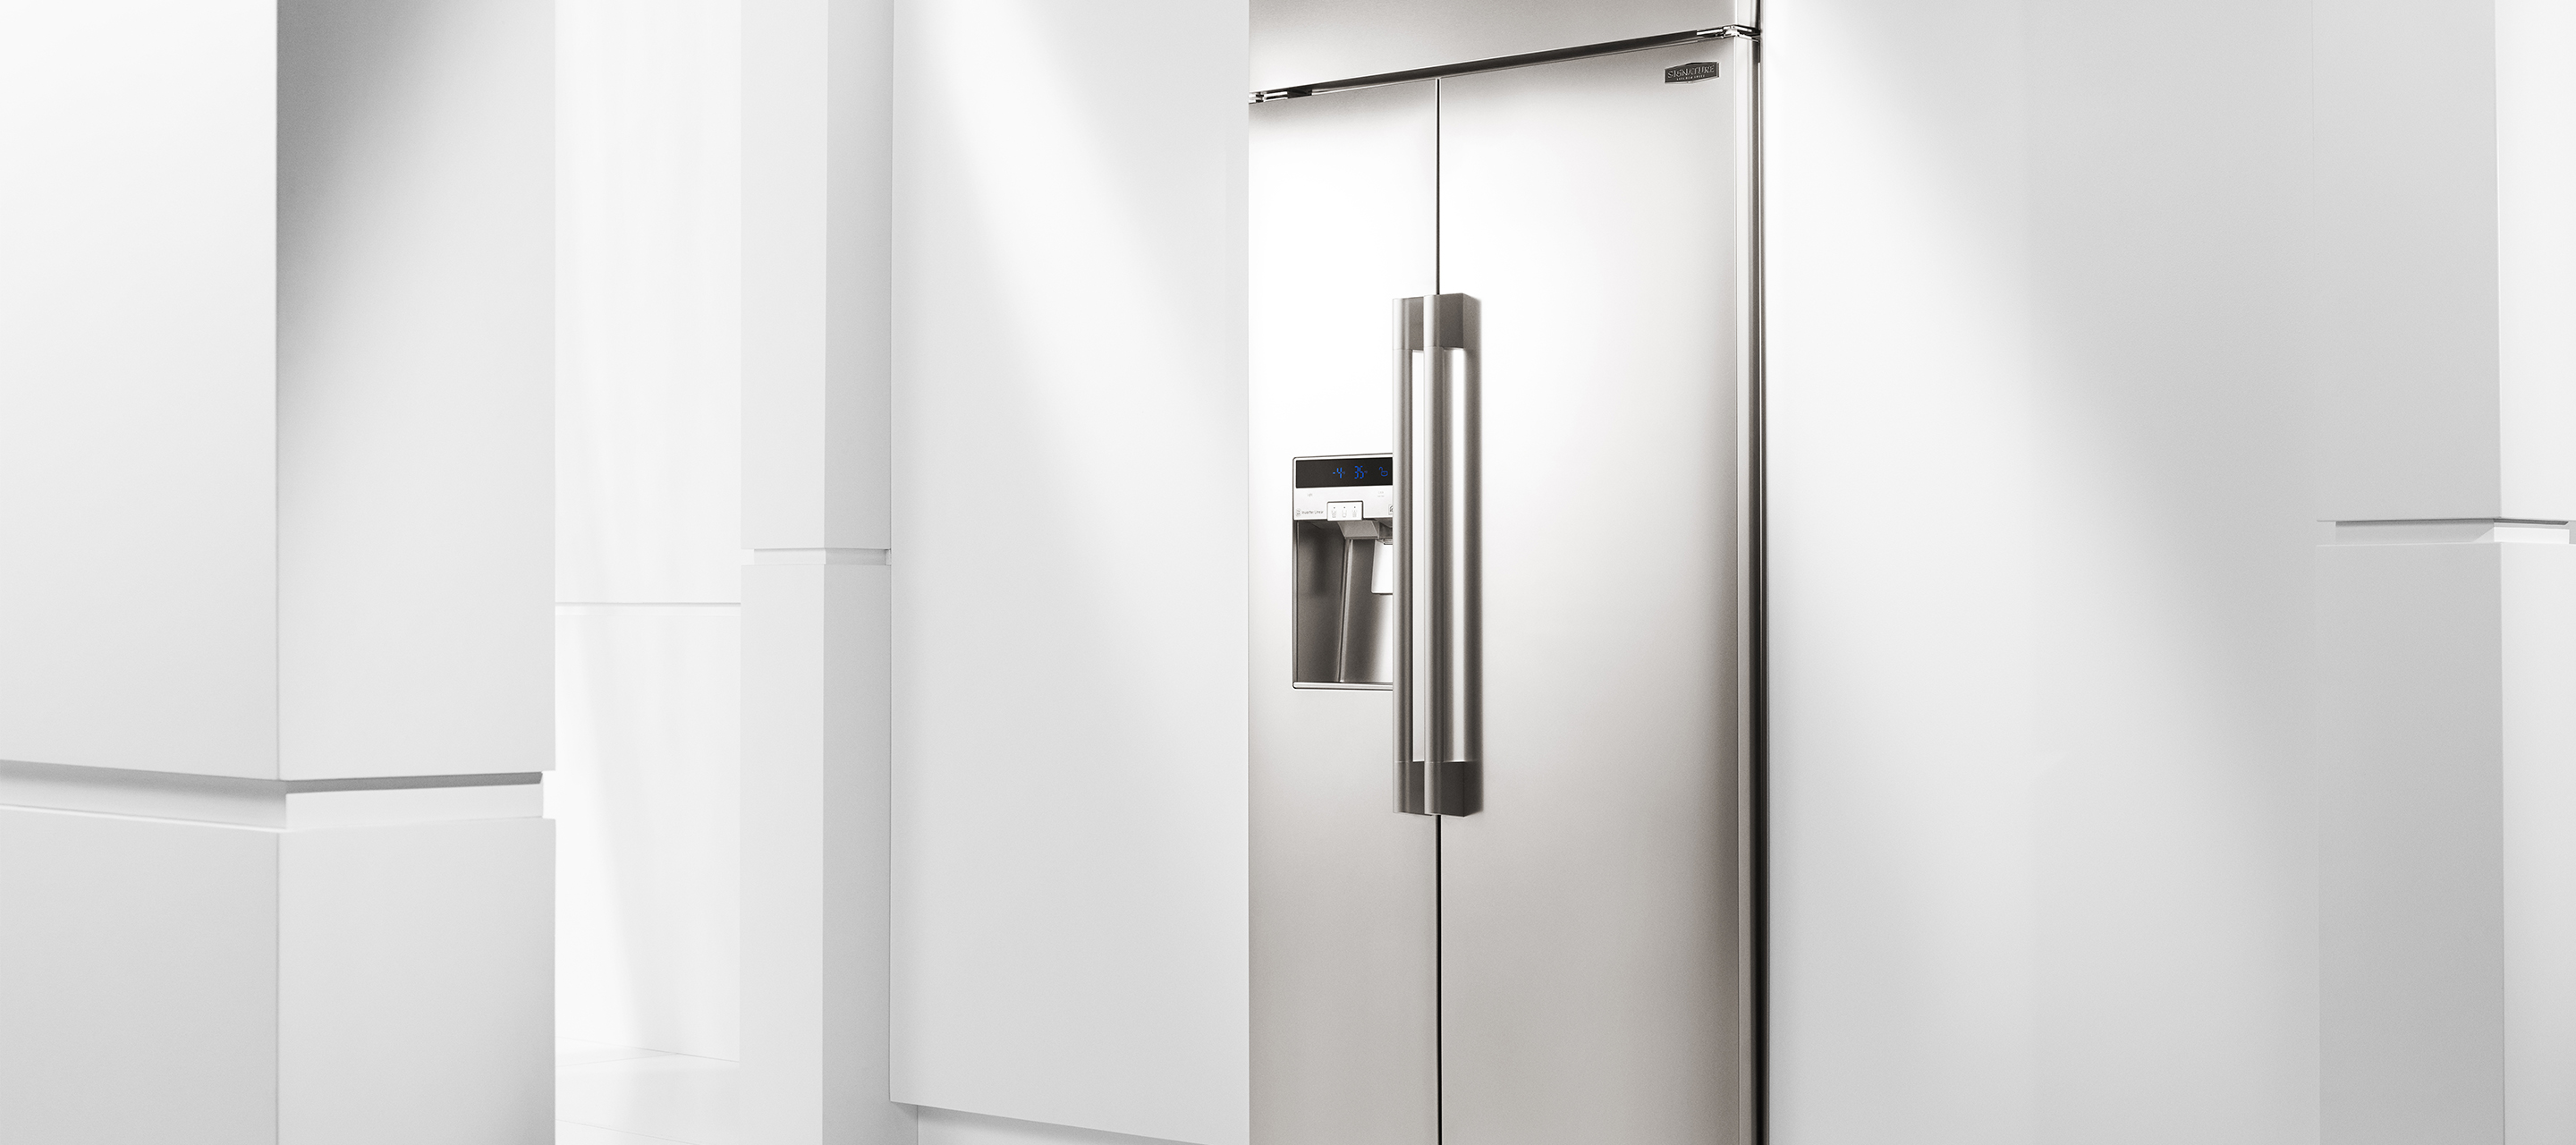 "42"" Built-in Side-by-Side Refrigerator from Signature Kitchen Suite"